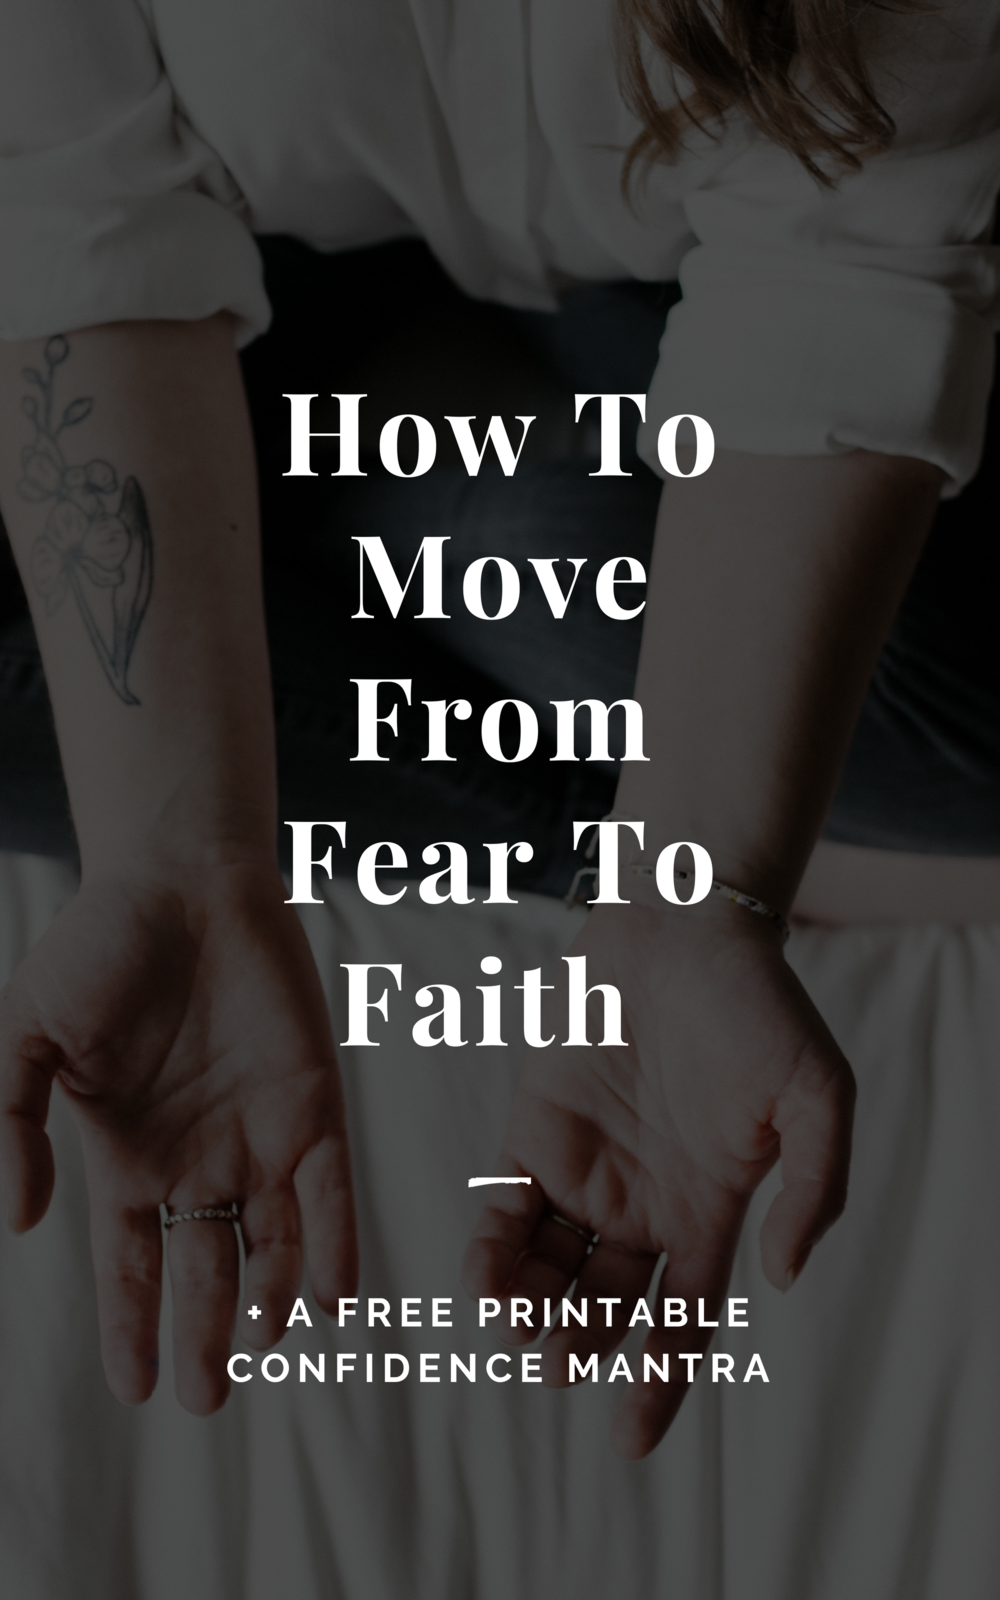 How to Move from Fear to Faith